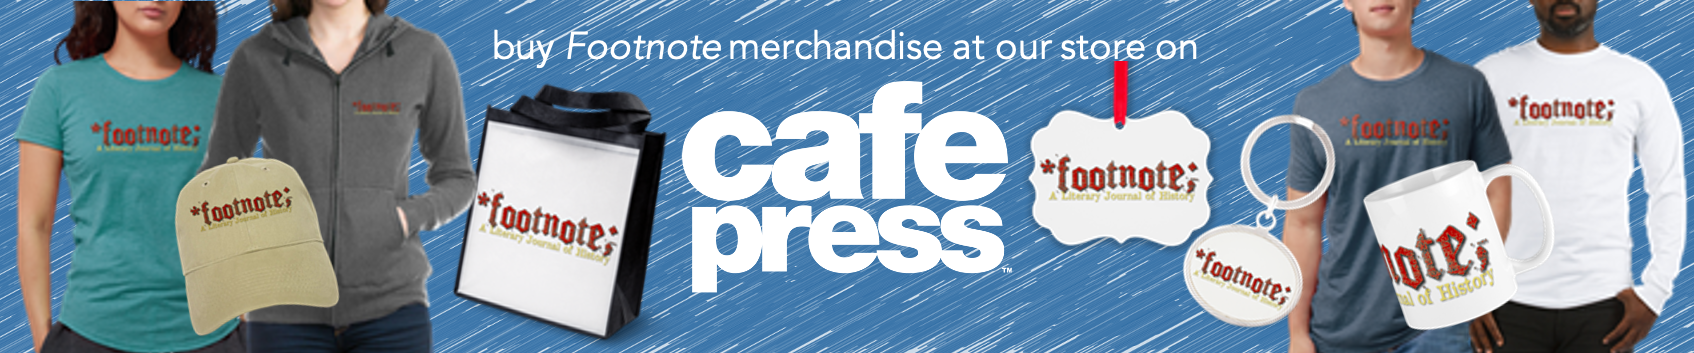 Buy Footnote merchandise at Cafe Press